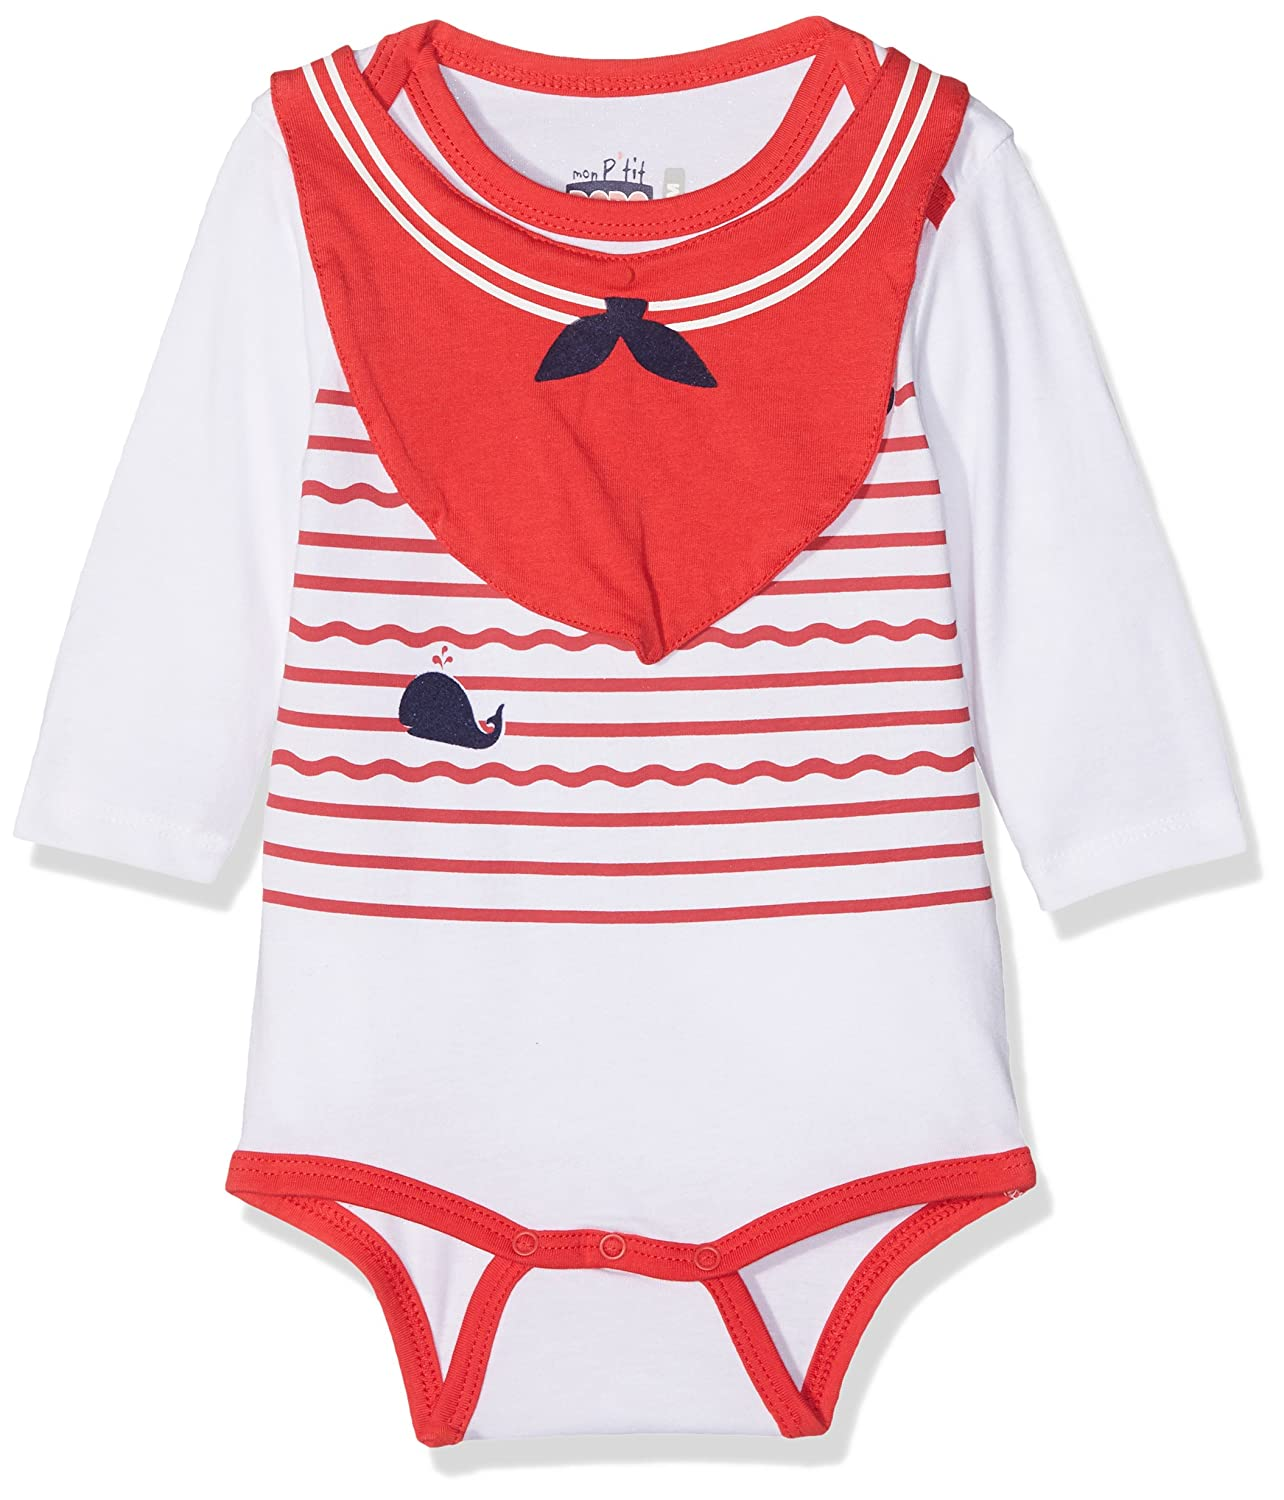 Bright Red Baby Vest//Bodysuit Baby Shower Gift RED Blank Plain Baby Grow for Boys or Girls by BABY MOOS UK New Baby Gift Ideal for Printing or Embroidery 3-6 Months